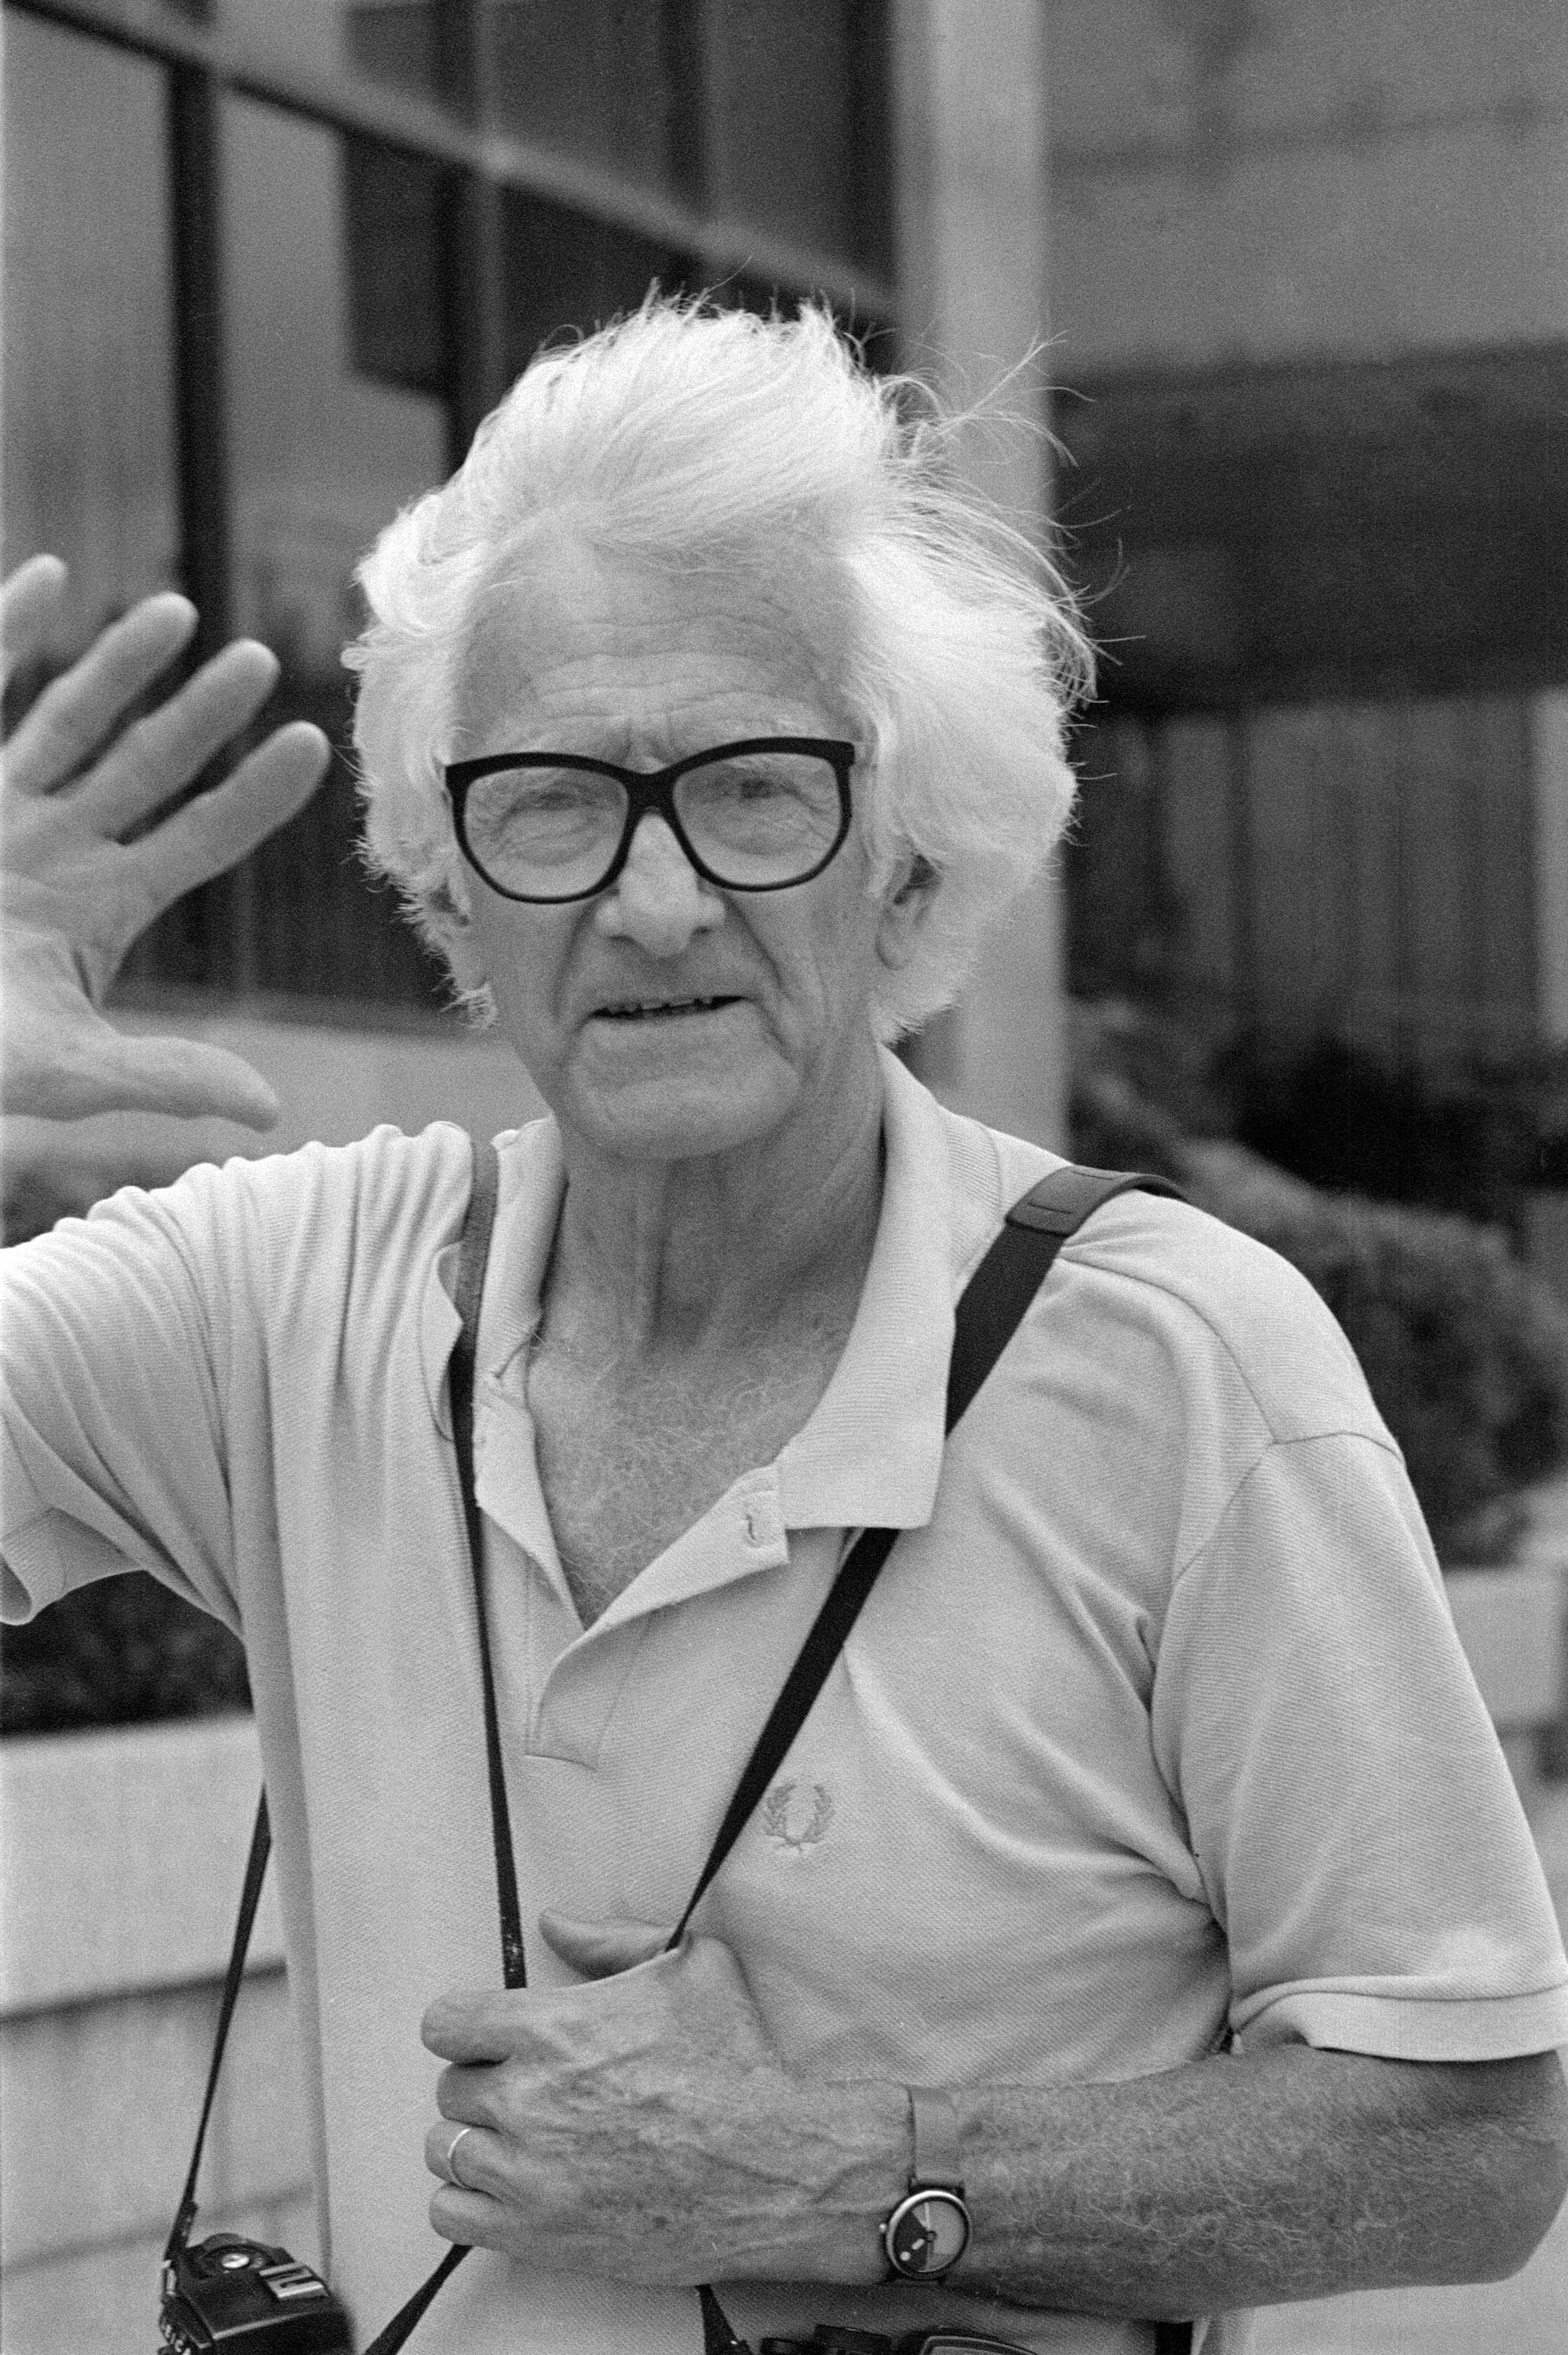 Marc Riboud, with white hair and black-rimmed glasses, waving with one hand up, the other holding the strap of the camera that hangs around his neck